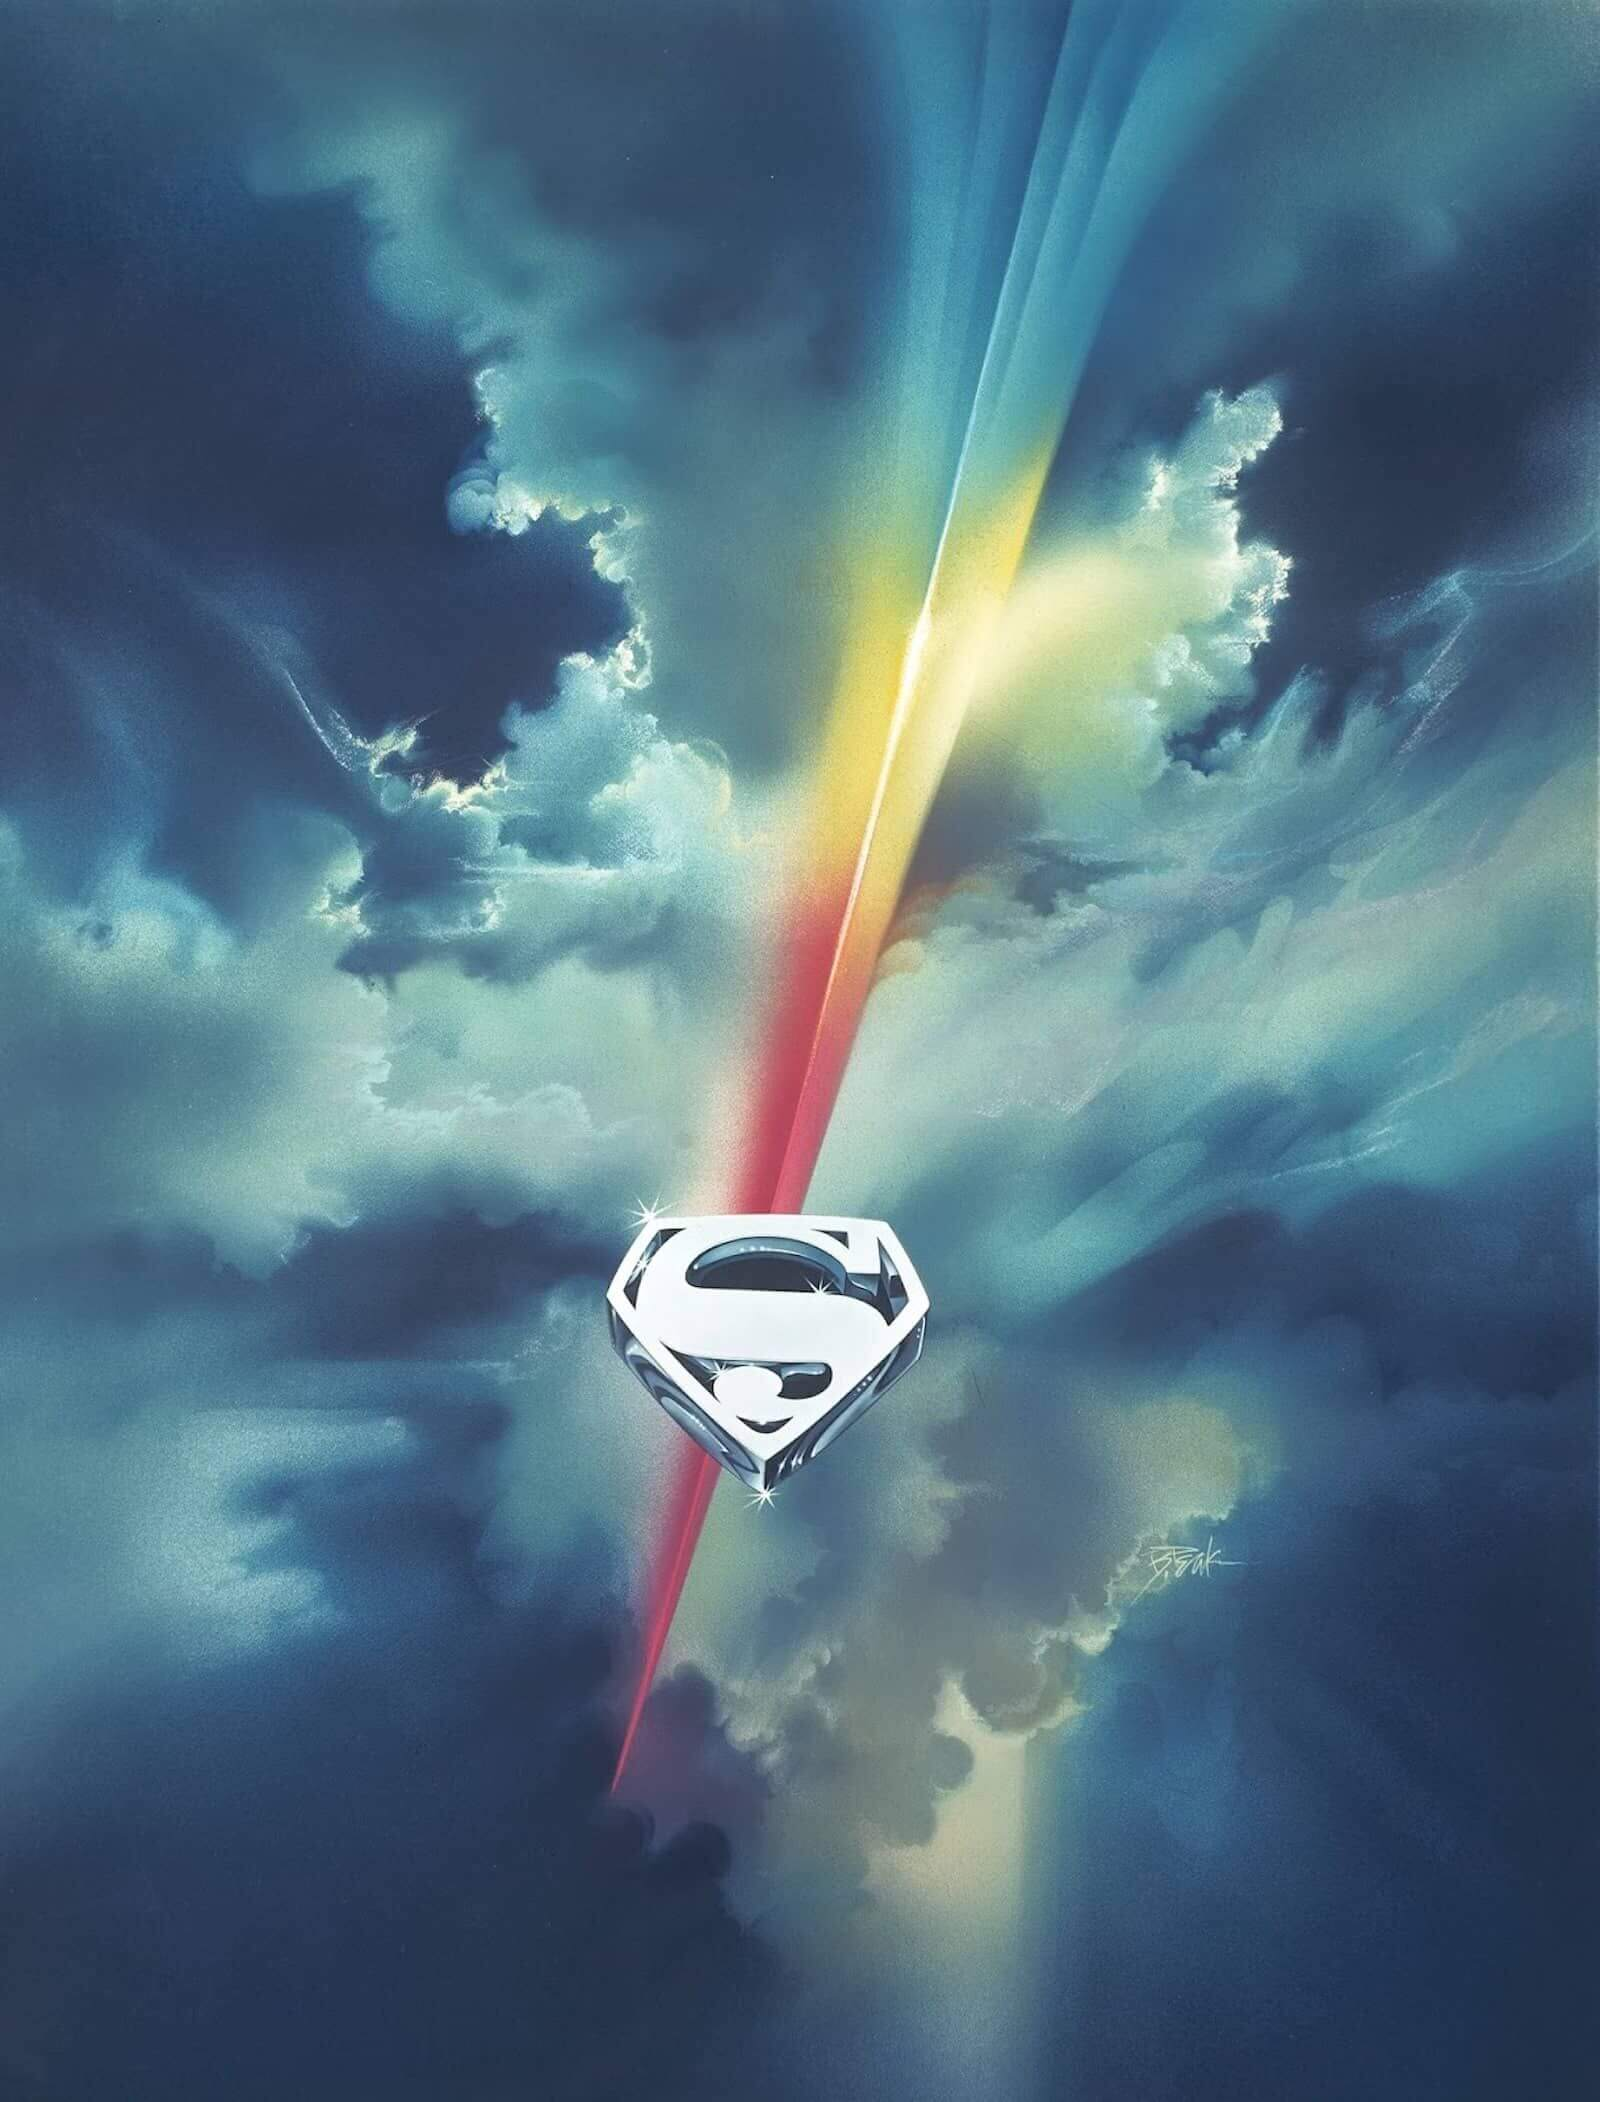 best movie taglines superman